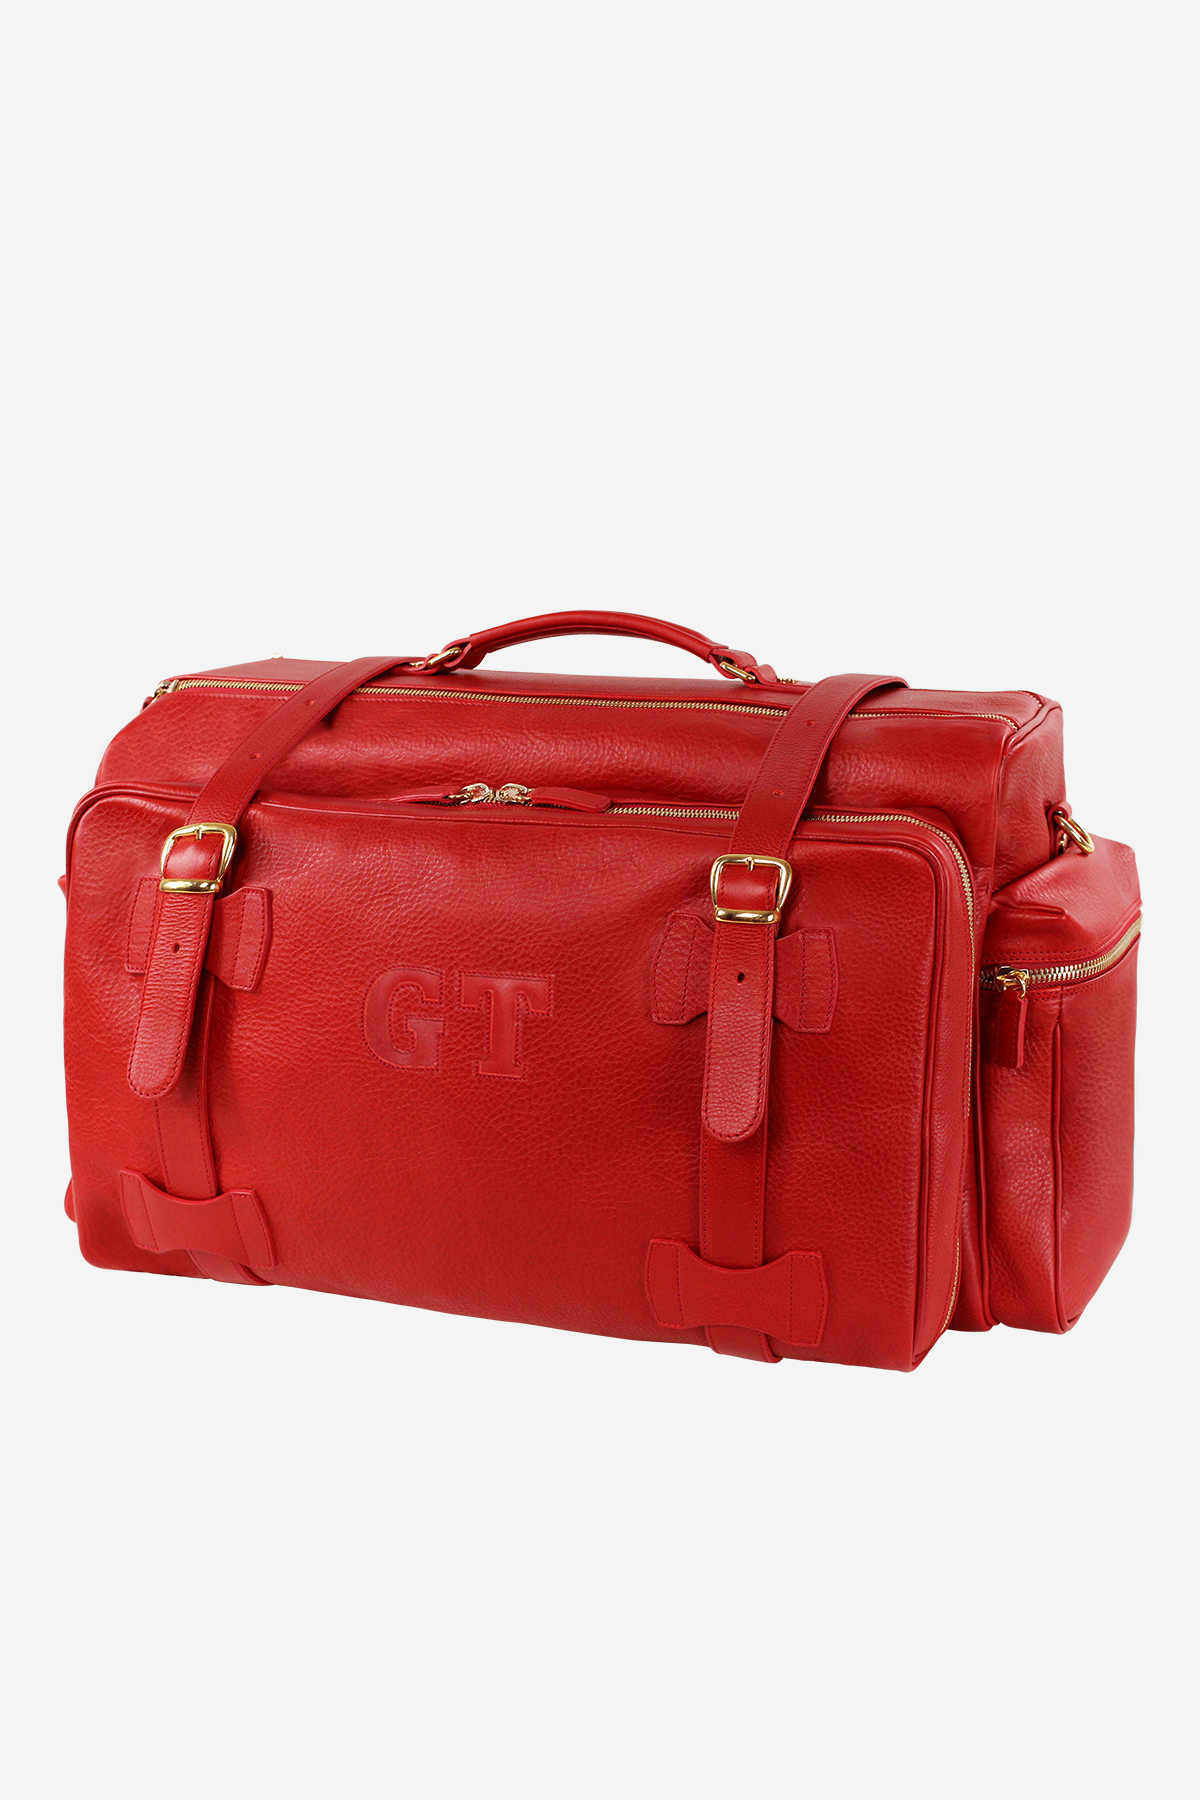 Italian Tradition in Fashion Weekender Jones handmade in italy vegetable tanned leather terrida venezia marco polo collection business travel